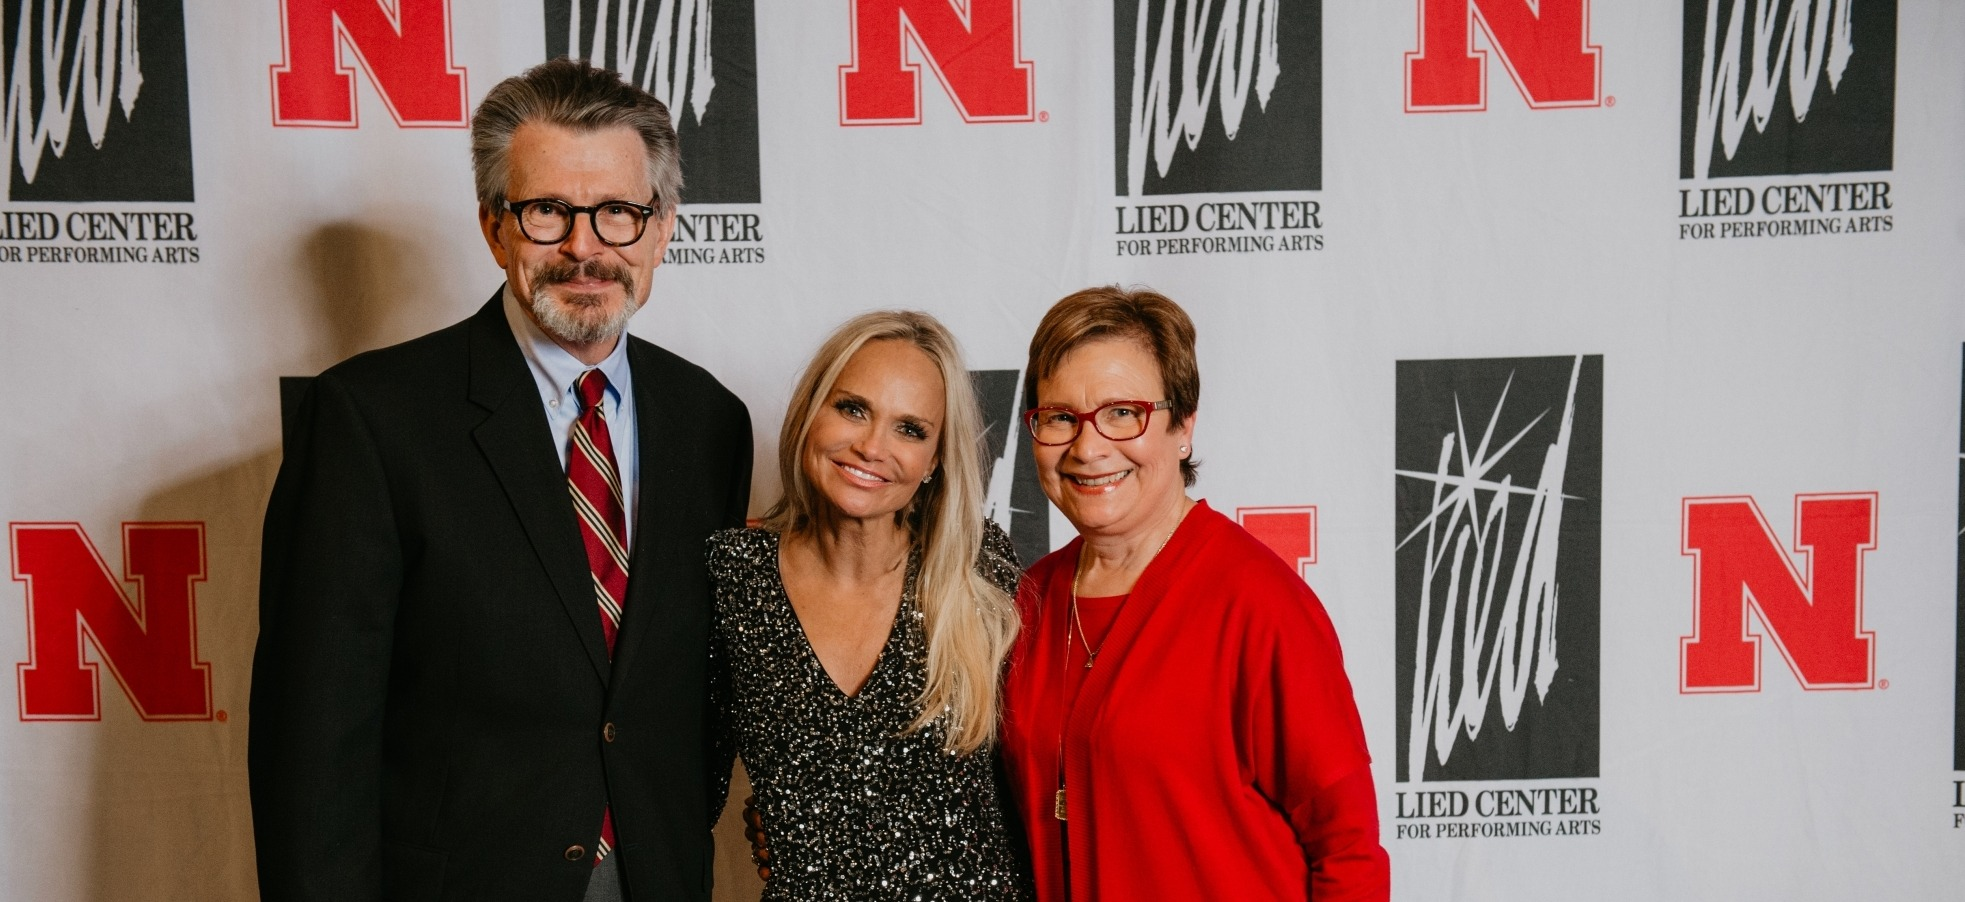 Photo of Kristin Chenoweth wearing a silver dress taking a meet and greet photo in front of a step and repeat backdrop with Nebraska and Lied Center logos.